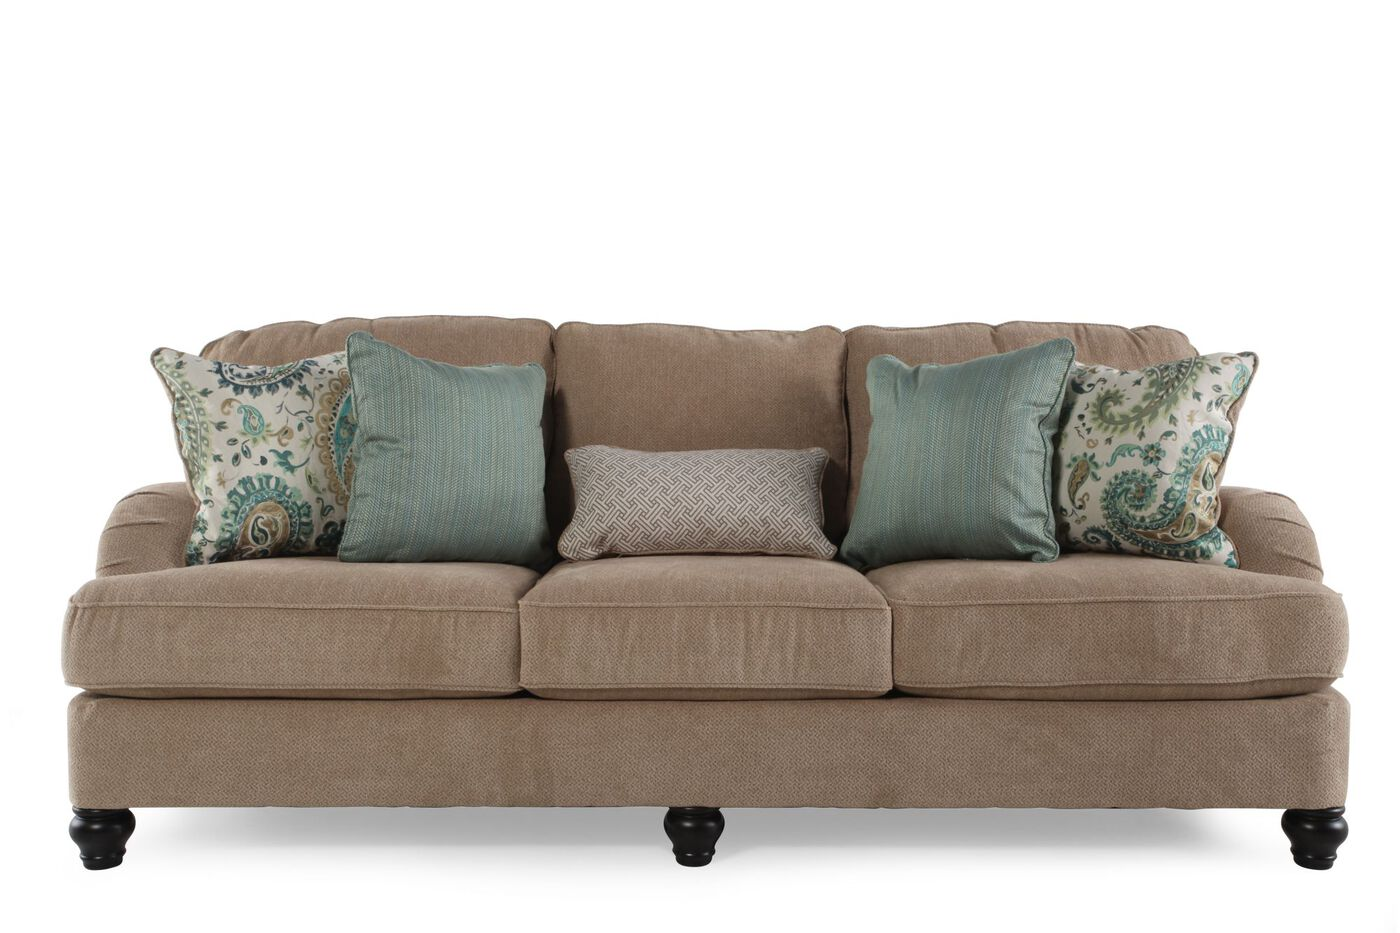 Ashley lochian bisque sofa mathis brothers furniture for Mathis brothers living room furniture sectional sofas